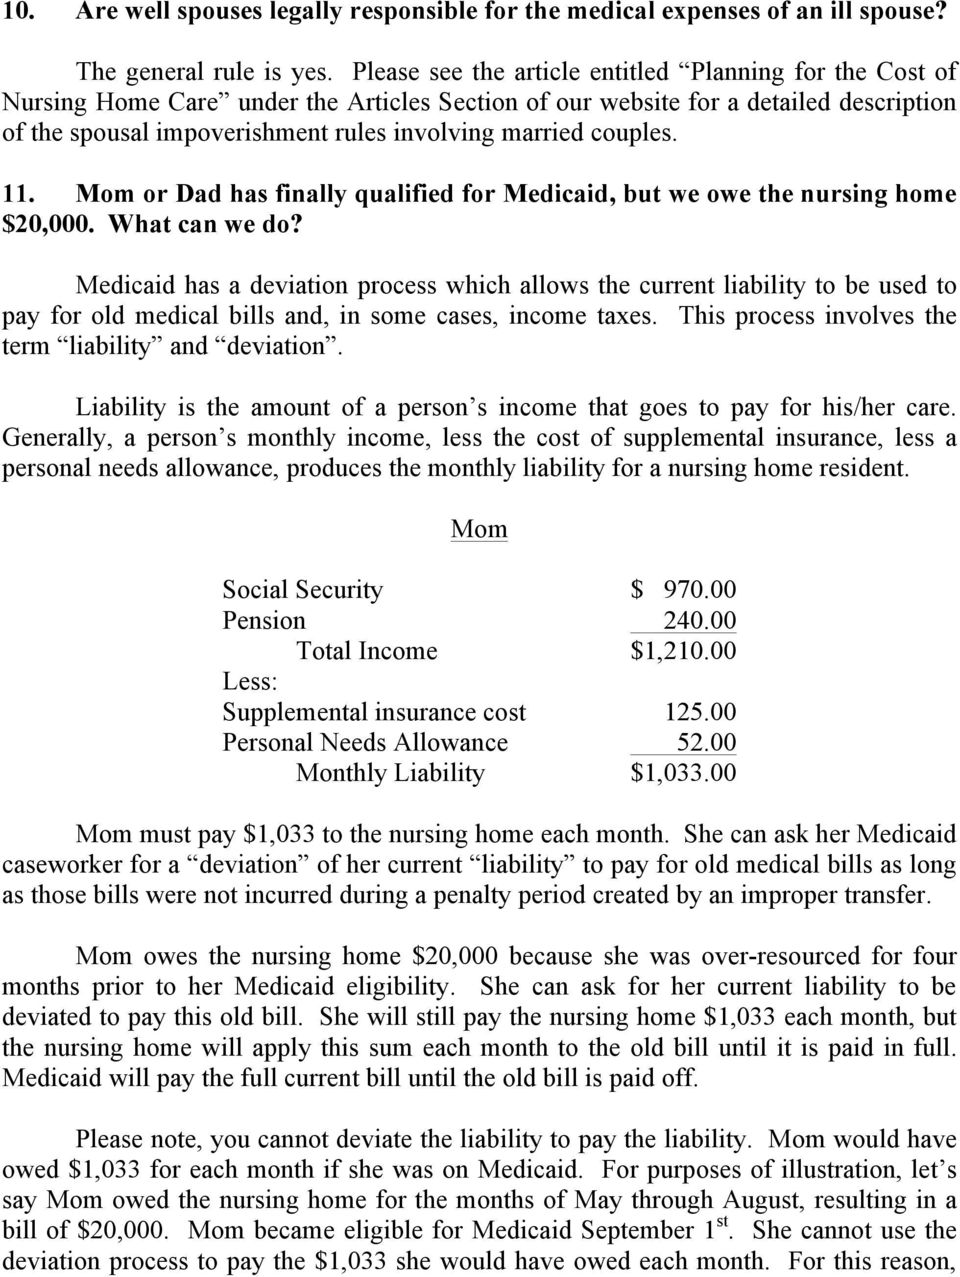 couples. 11. Mom or Dad has finally qualified for Medicaid, but we owe the nursing home $20,000. What can we do?